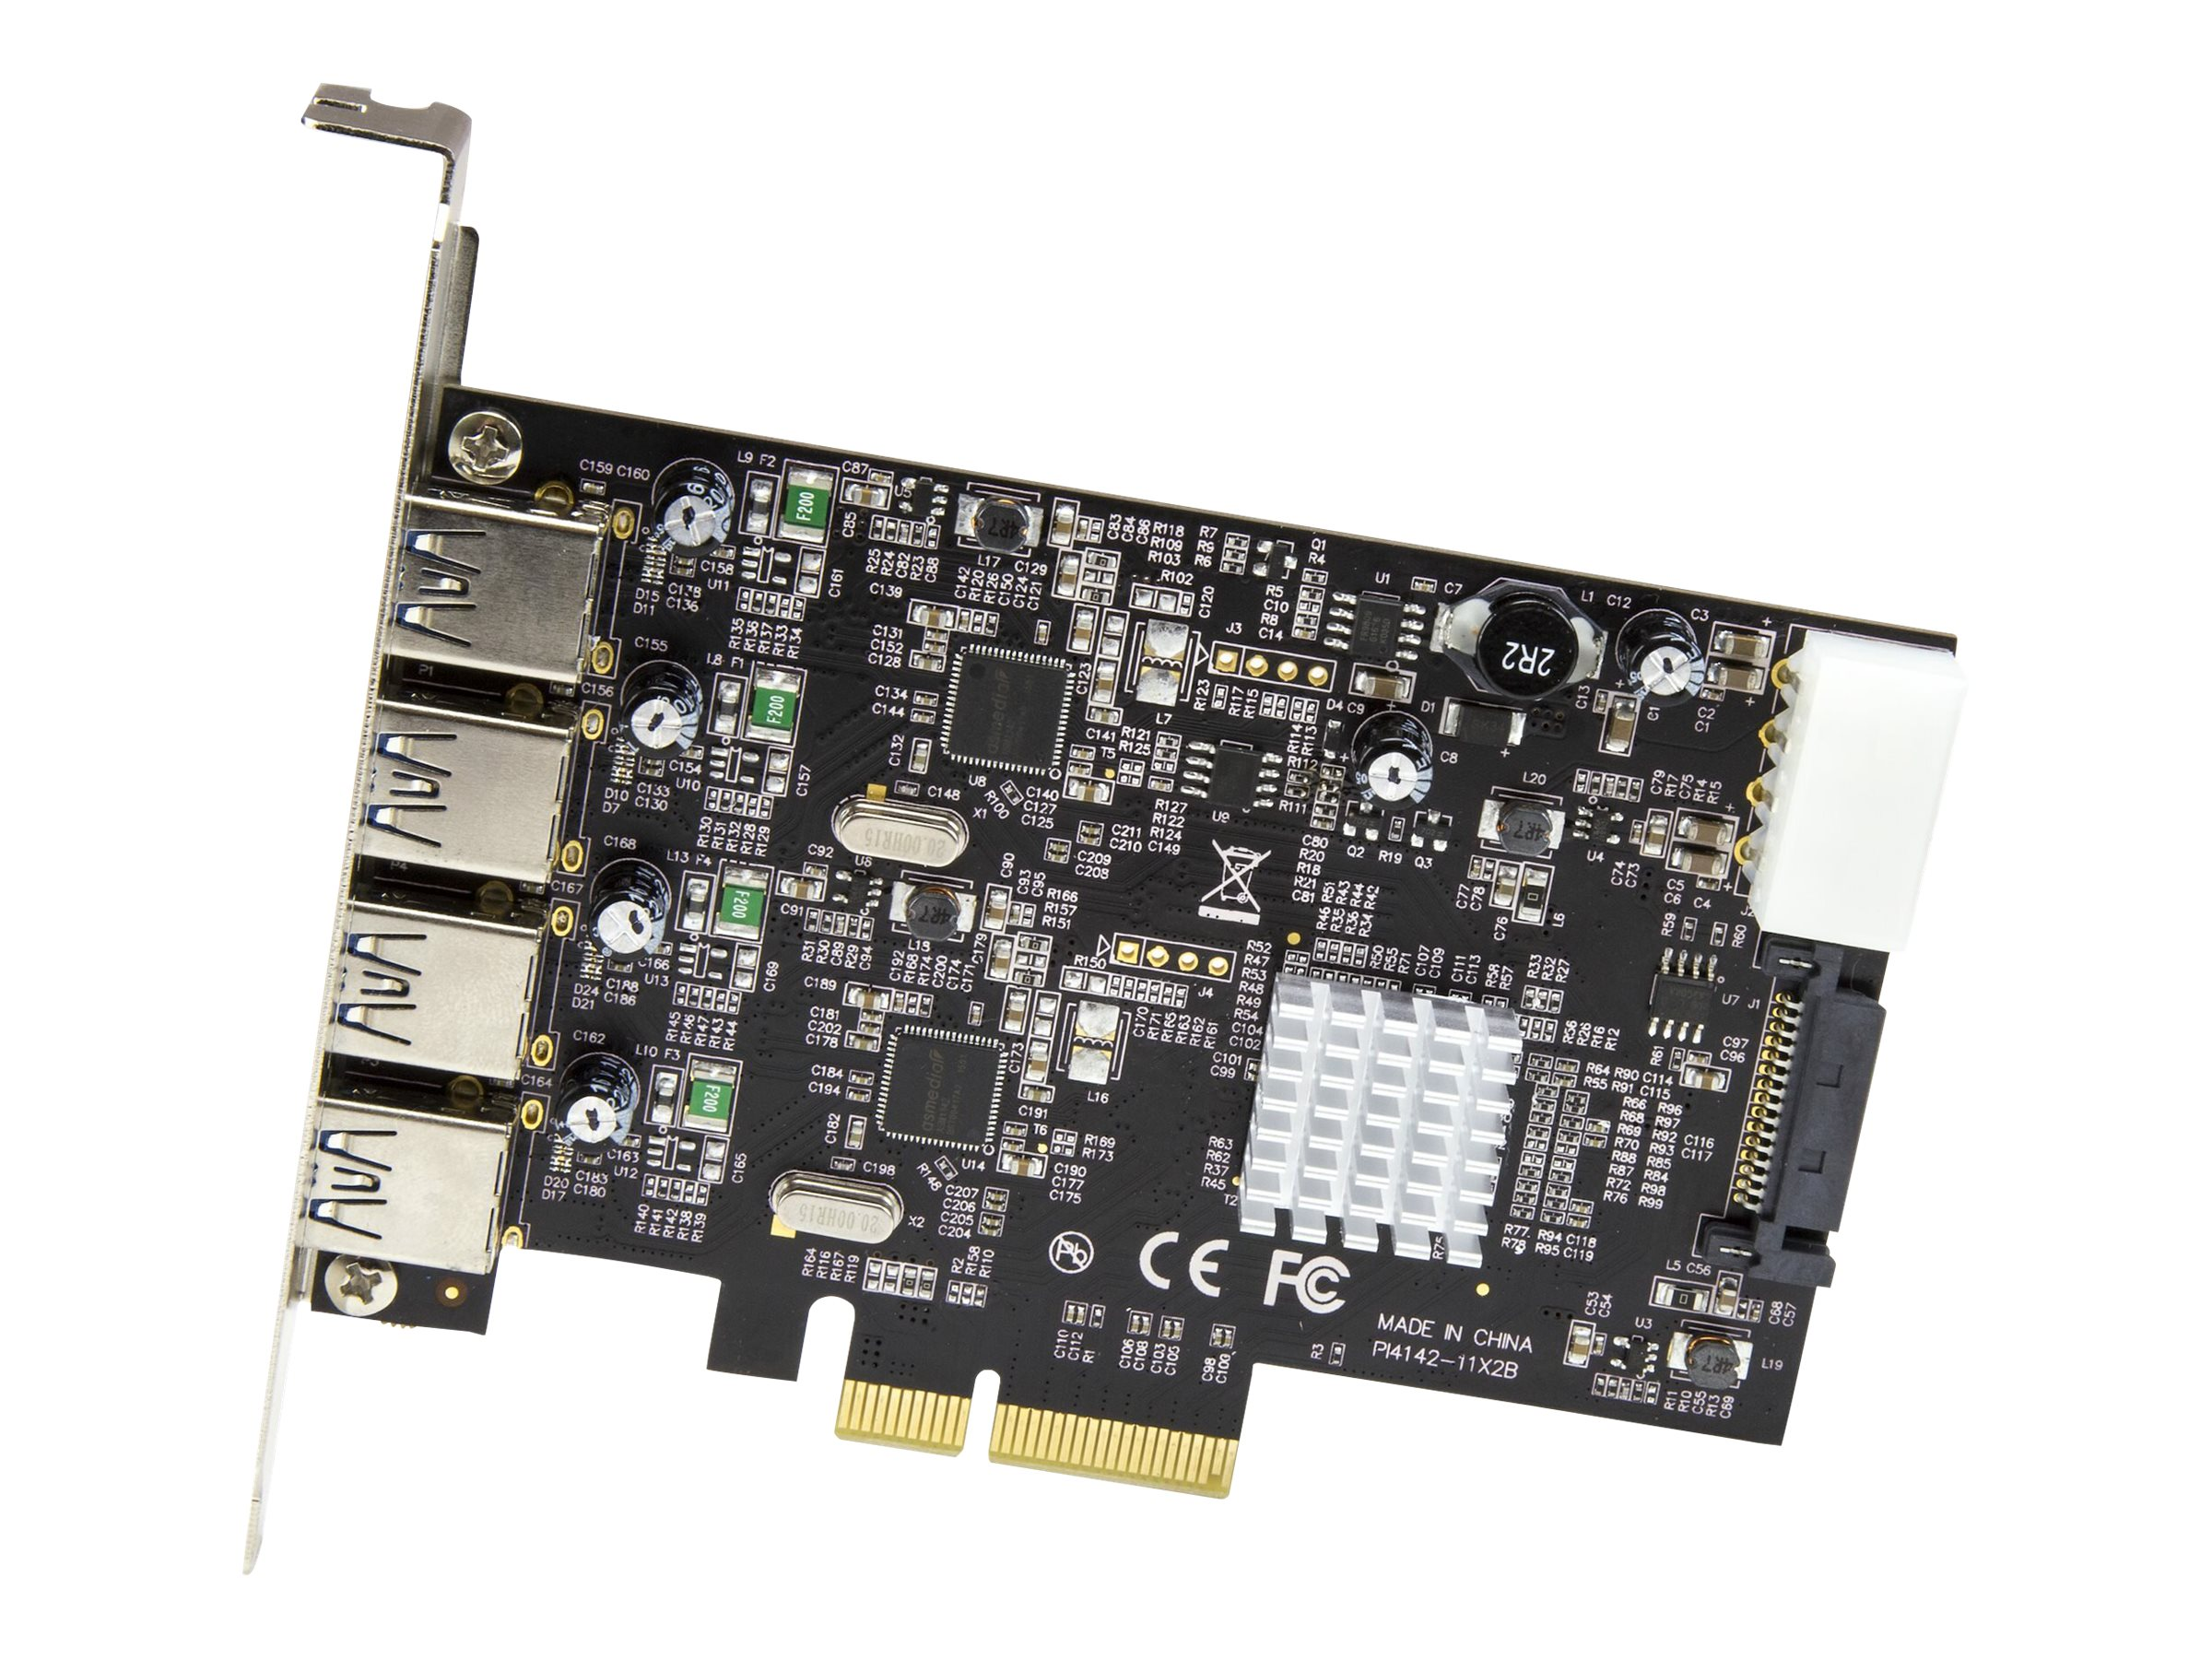 StarTech.com 4-Port USB PCIe Card - 10Gbps USB 3.1/3.2 Gen 2 Type-A PCI Express Expansion Card - 2 Controllers - 4xUSB …